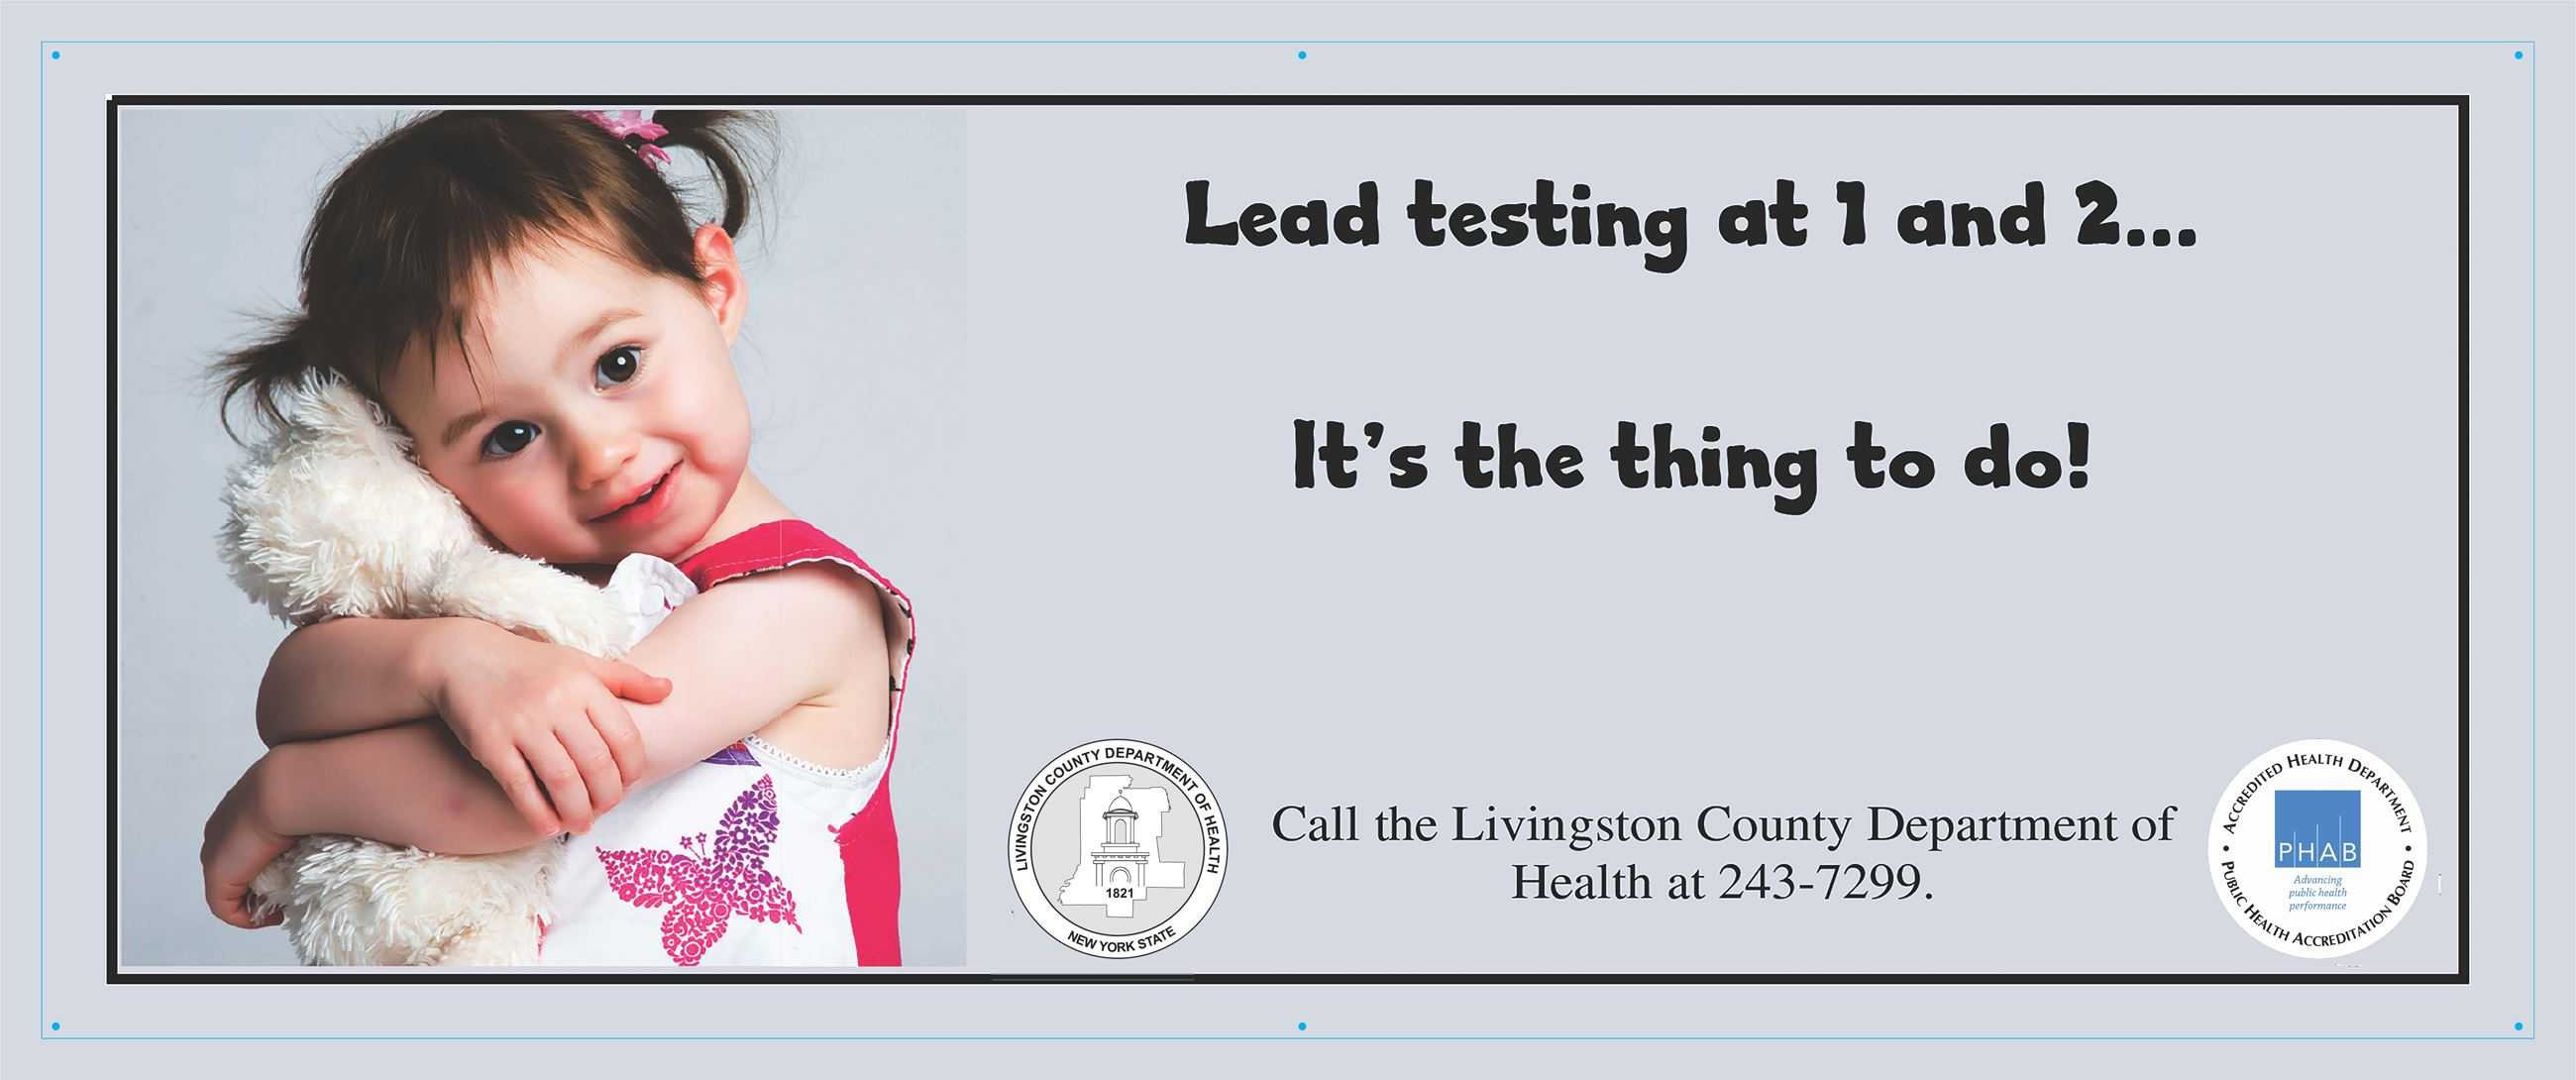 A message for parent's to get their child tested at ages 1 and 2 for lead poisoning by their phys